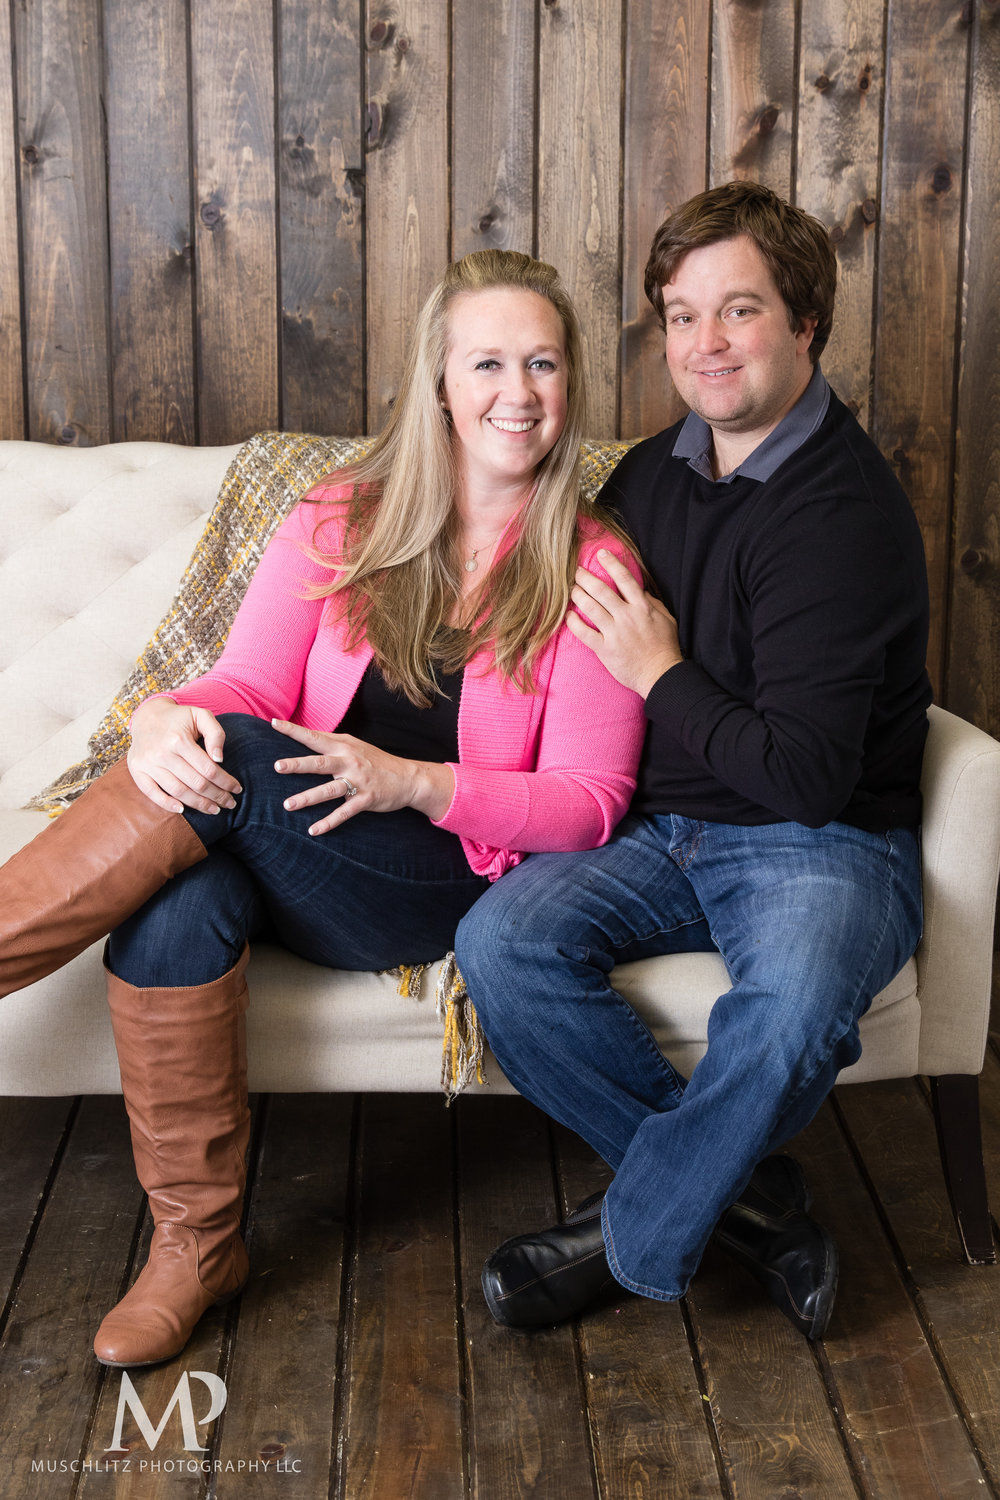 Gahanna-Columbus-Ohio-Winter-Engagement-Portrait-Photographer-Outdoors-muschlitz-photography052.JPG